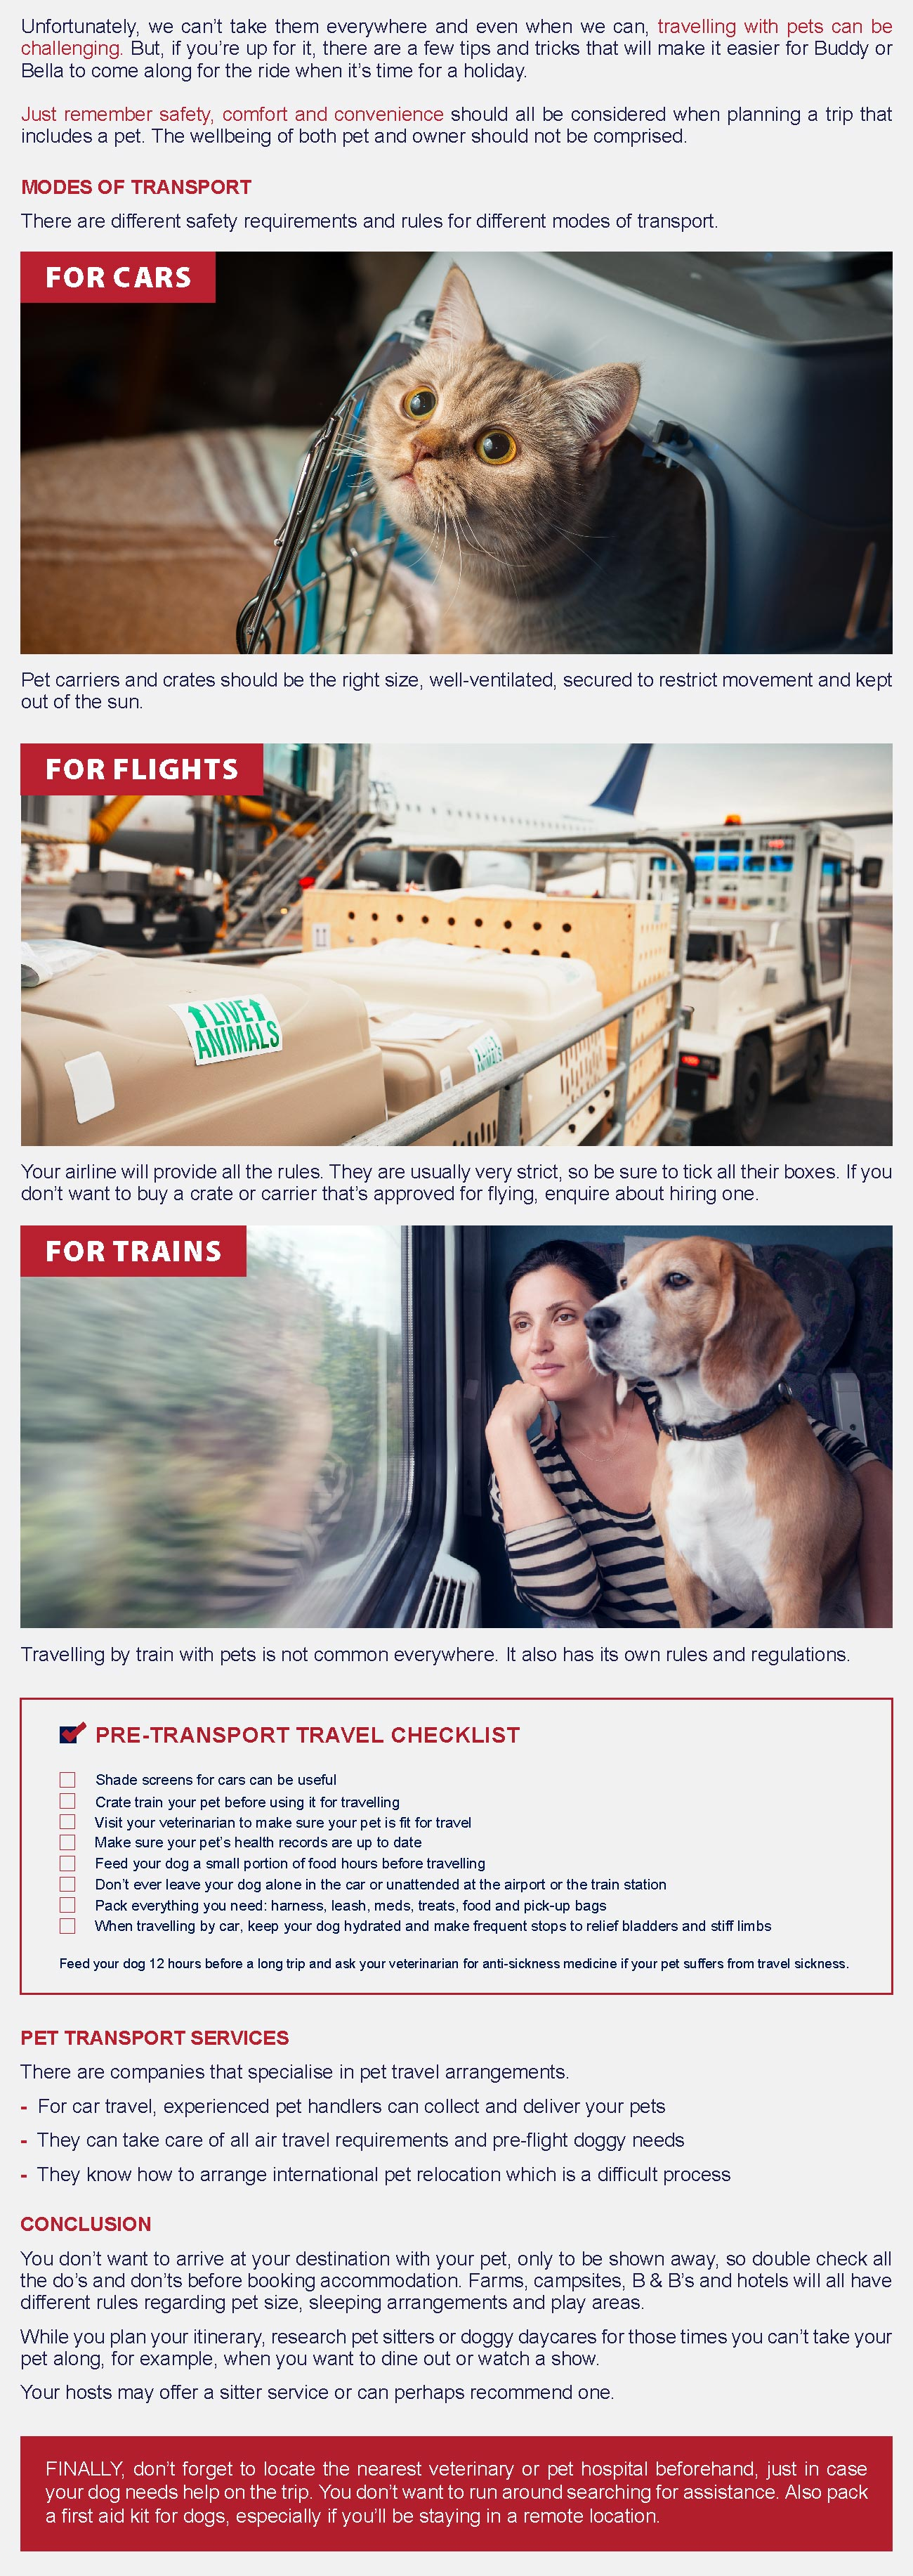 infographic- how to tackle pet transport